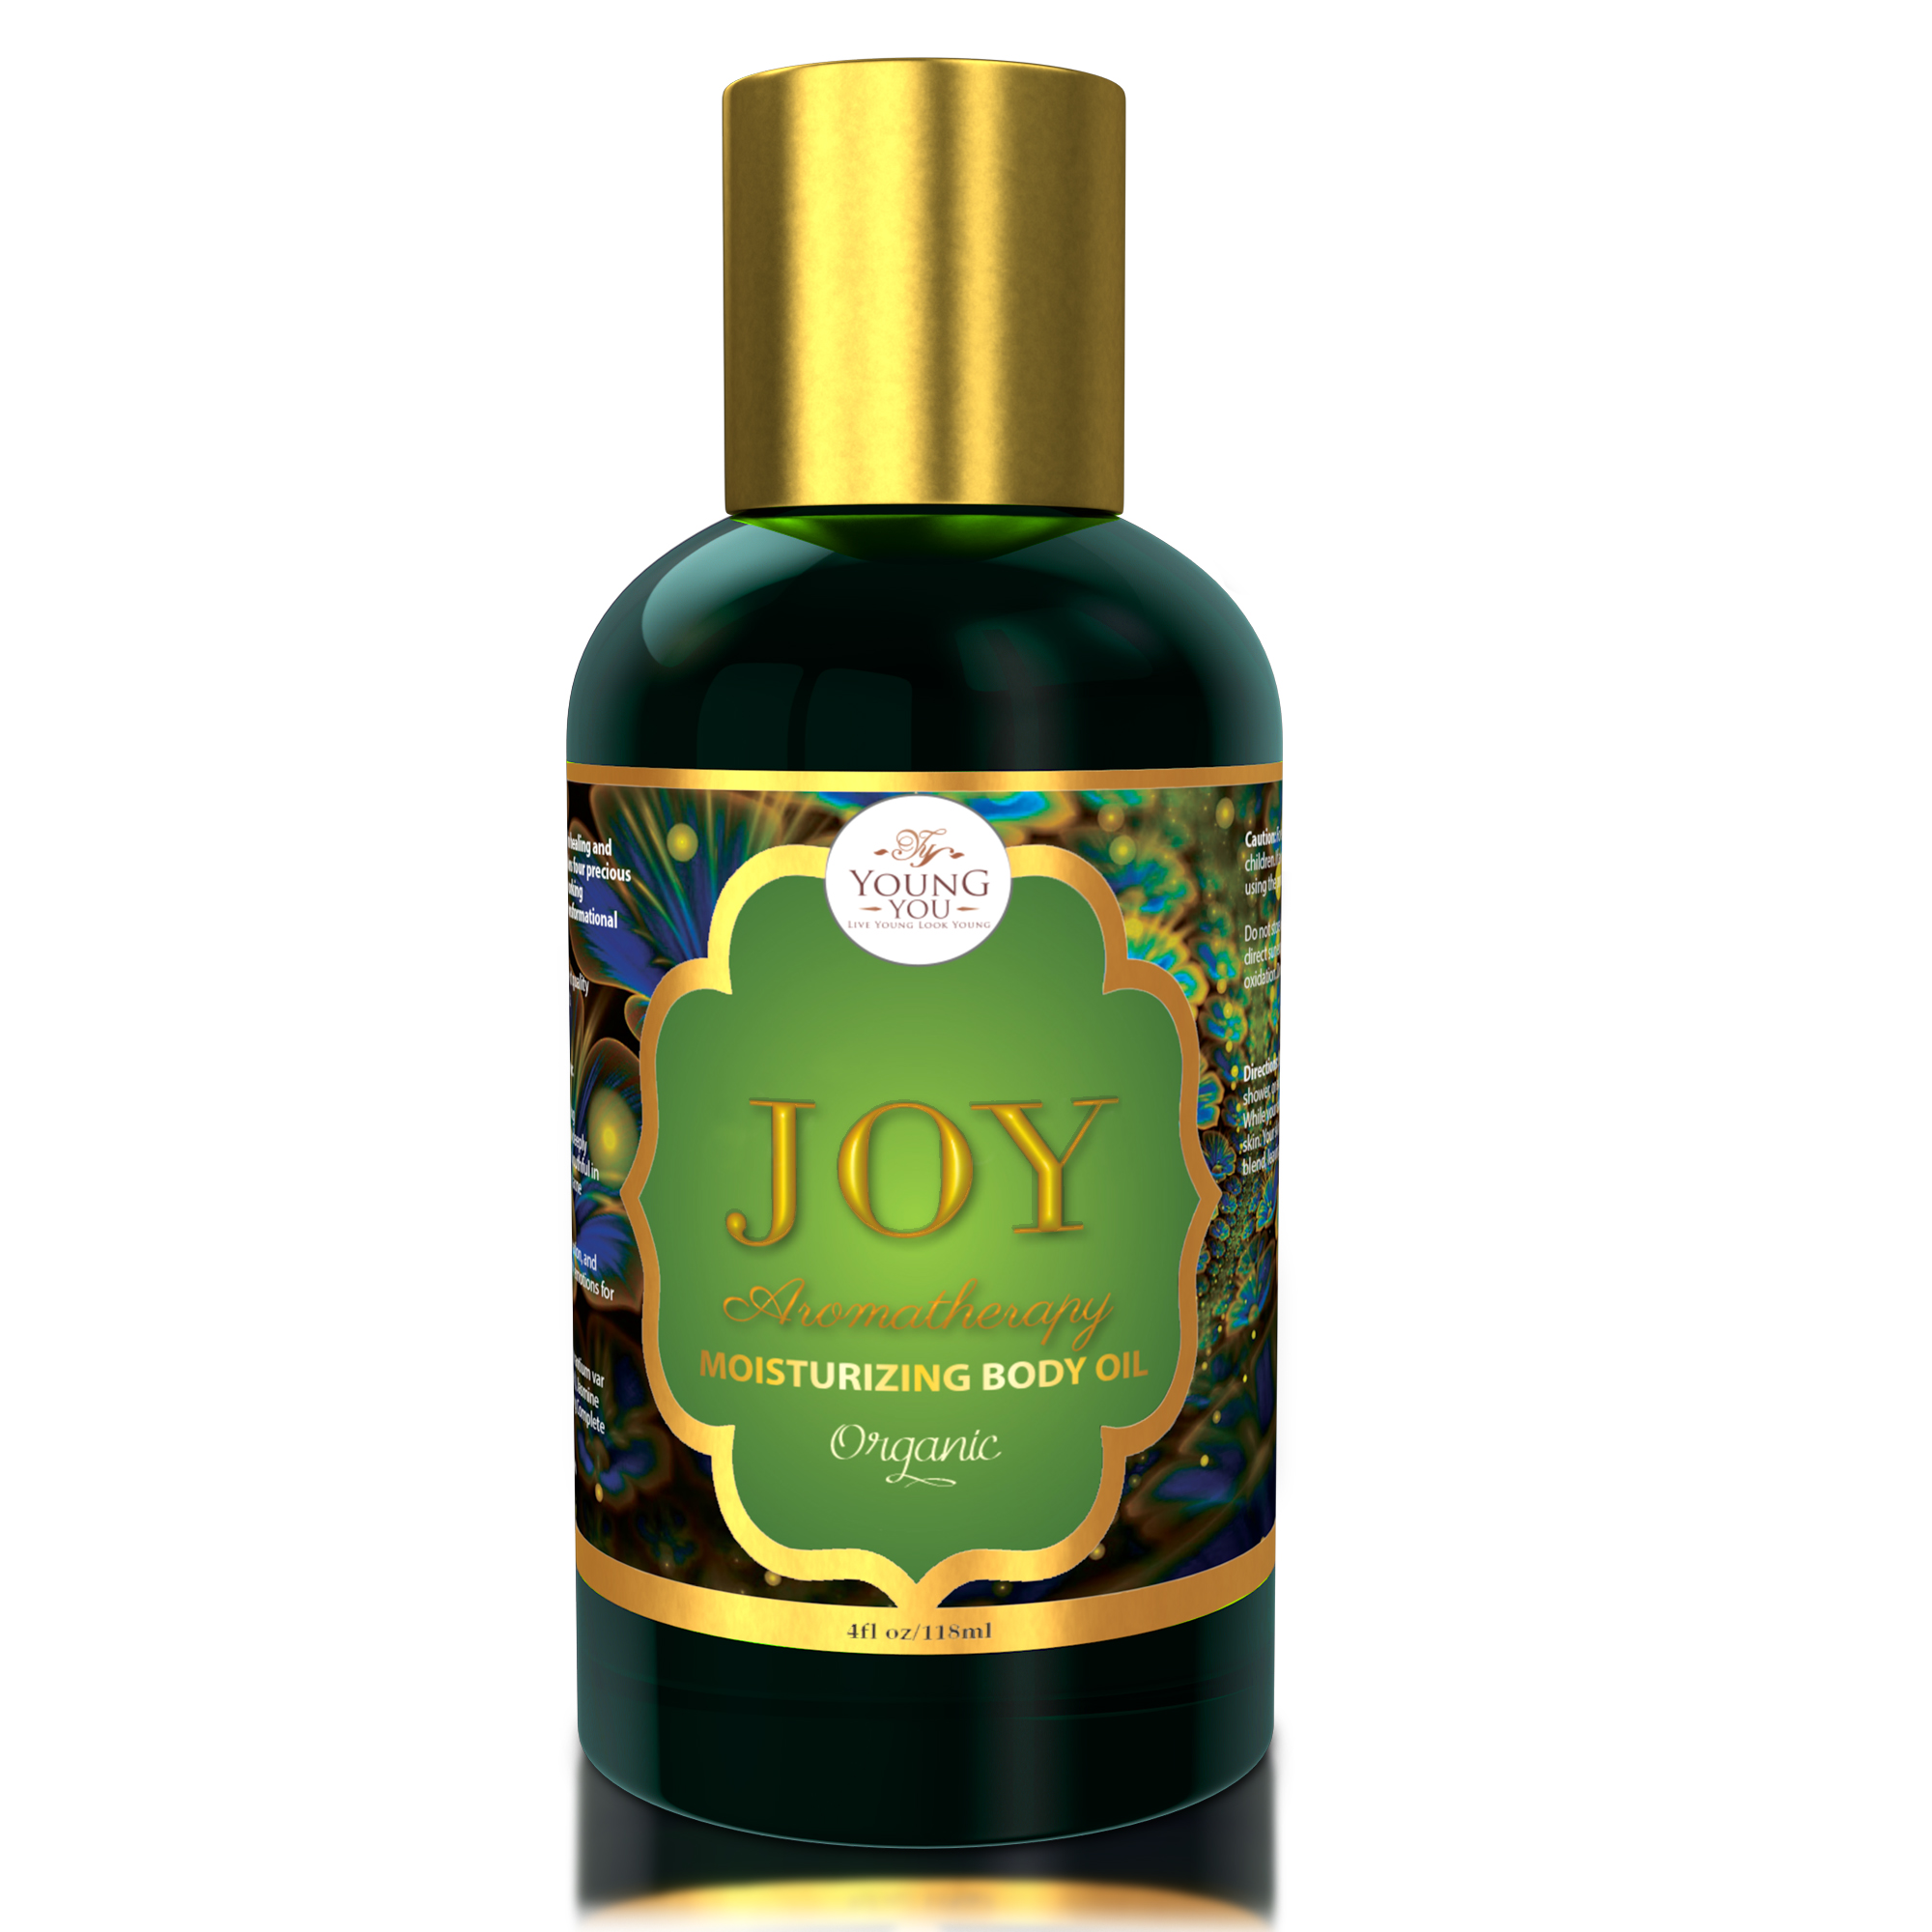 YoungYou Joy Body Oil